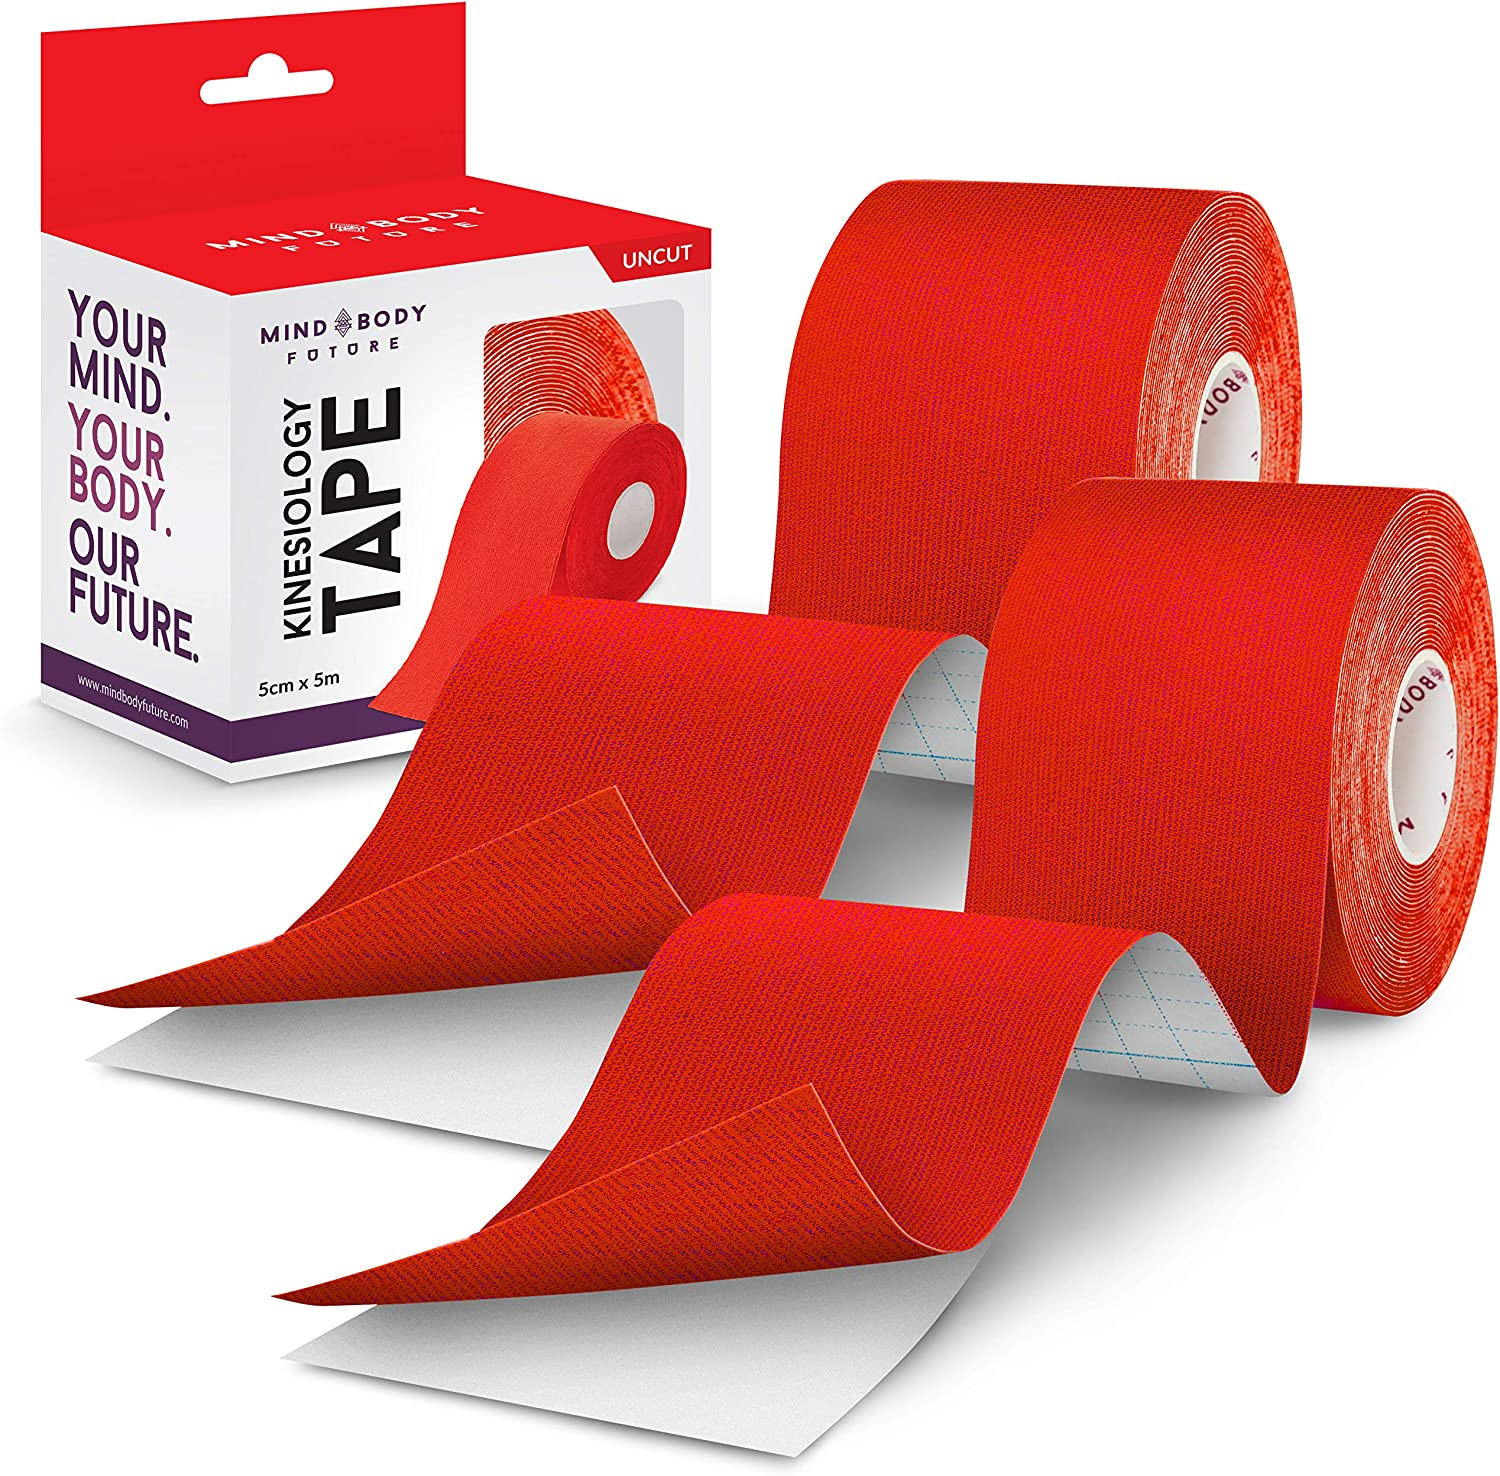 Kinesiology Tape - Medical Grade Uncut 5cm x 5m Roll Includes eGuide Orange Ideal for Athletic Sports Physio Strapping and Muscle Injury /& Support 1 Pack